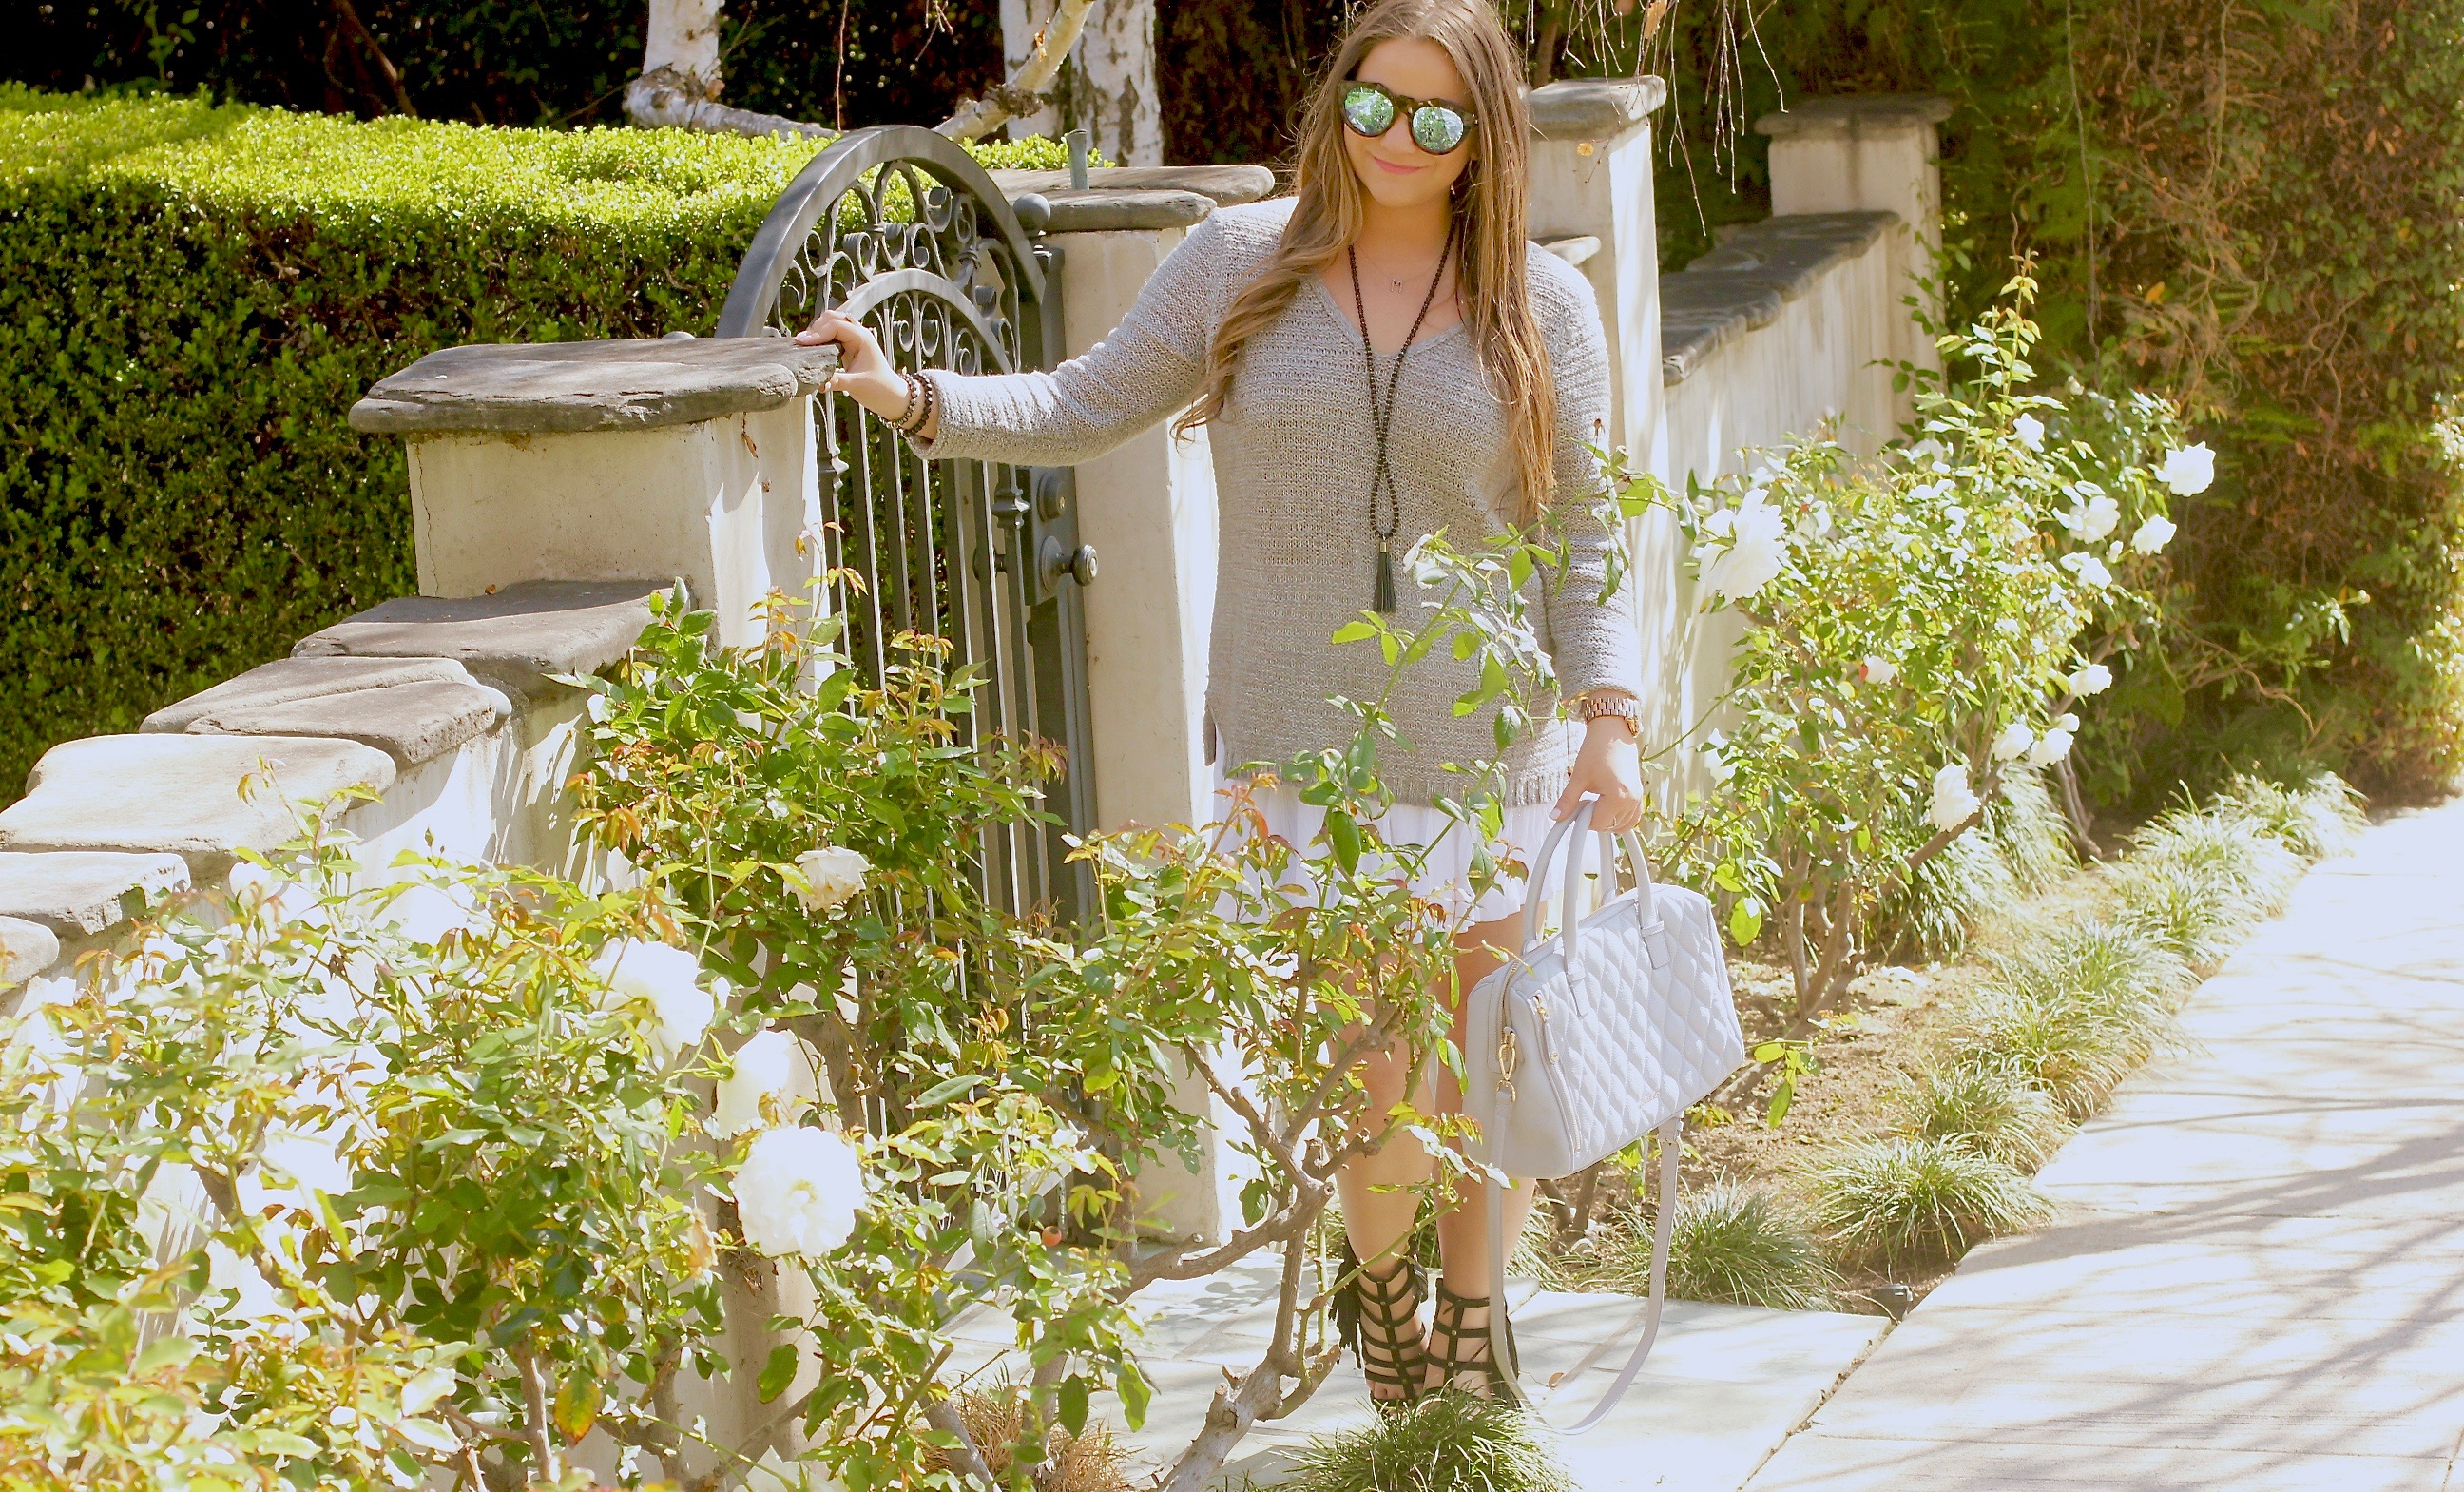 missyonmadison, melissa tierney, gray v neck sweater, gray sweater, white skirt, white pleated skirt, white skater skirt, le specs sunglasses, vera bradley satchel, vera bradley bag, gray vera bradley satchel, marrin costello jewelry, back fringe necklace, black fringe sandals, black heeled gladiator fringe sandals, la style, spring style, spring trends, winter style, la blogger, fashion blogger,